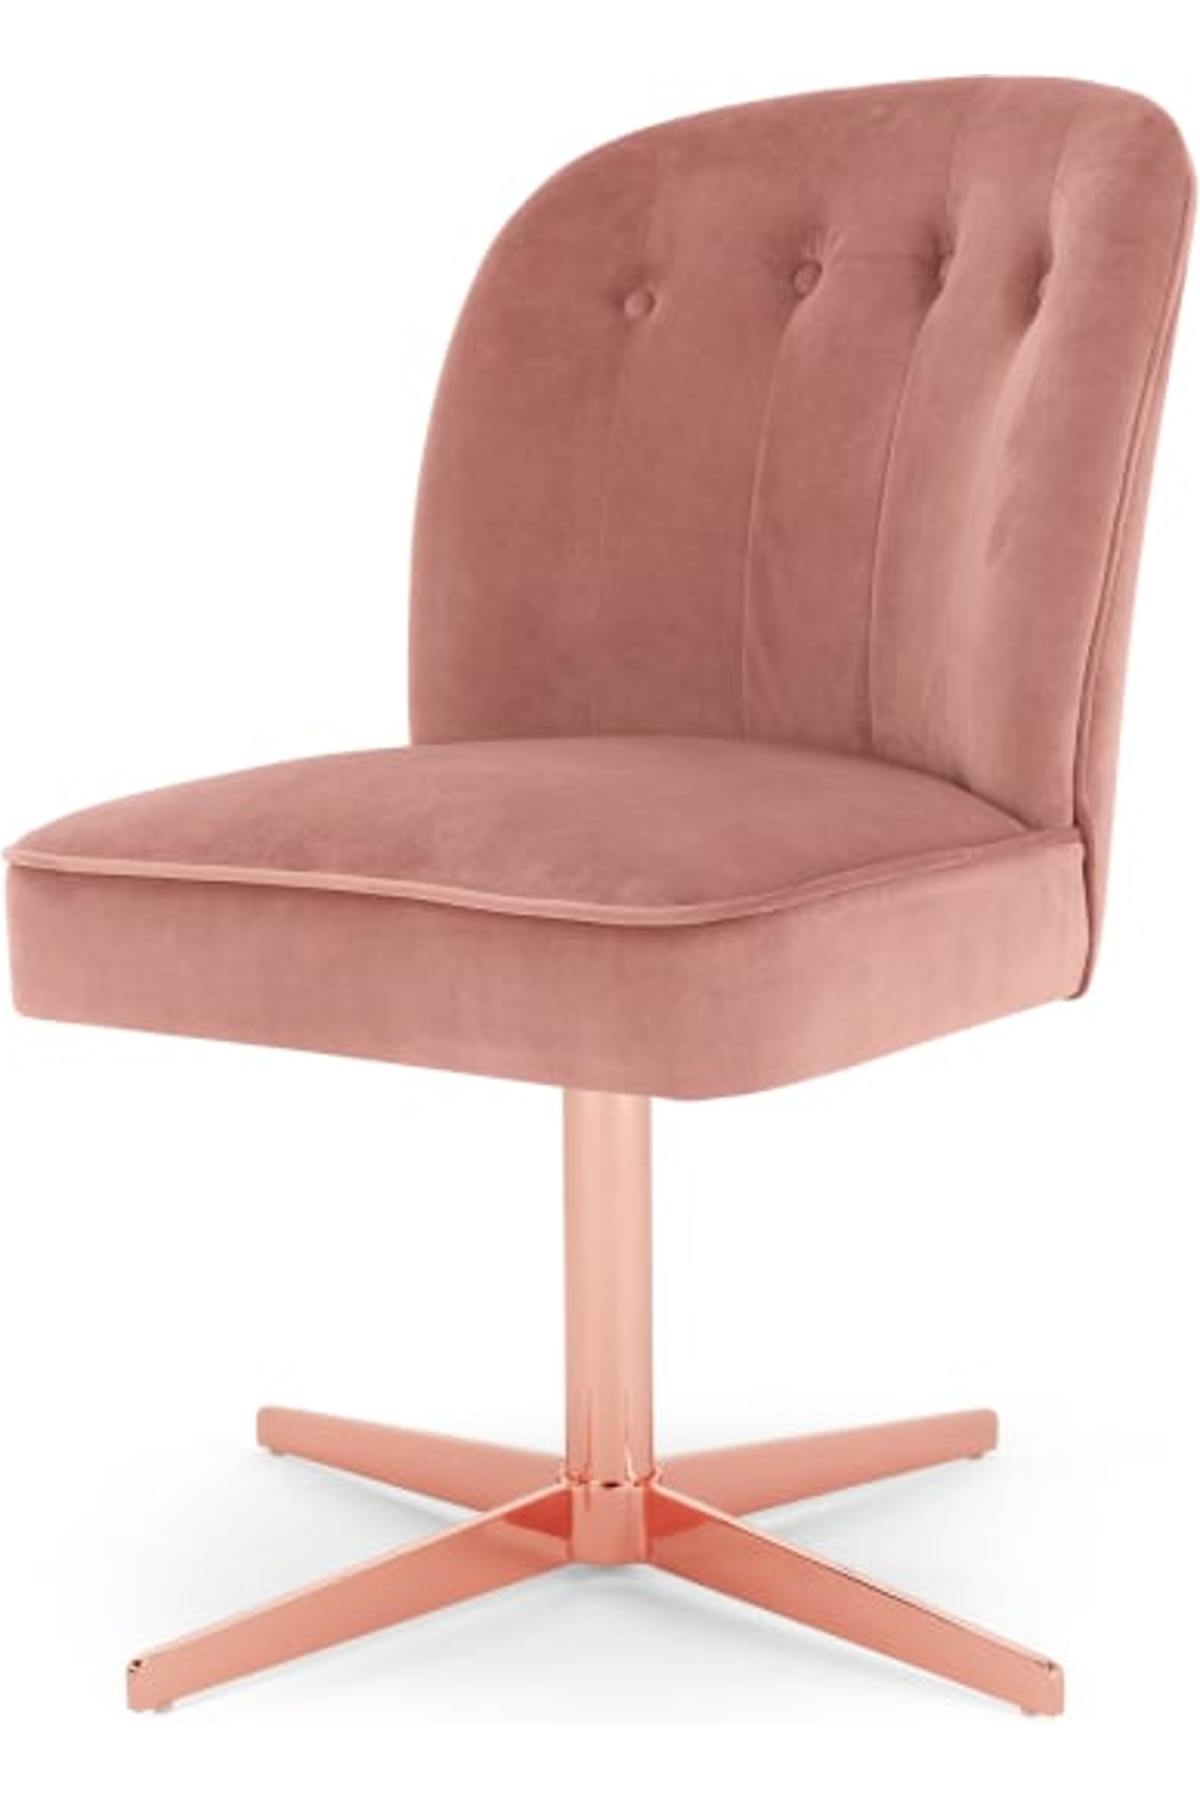 MADE Blush Pink Office chair in 2020 Home office chairs